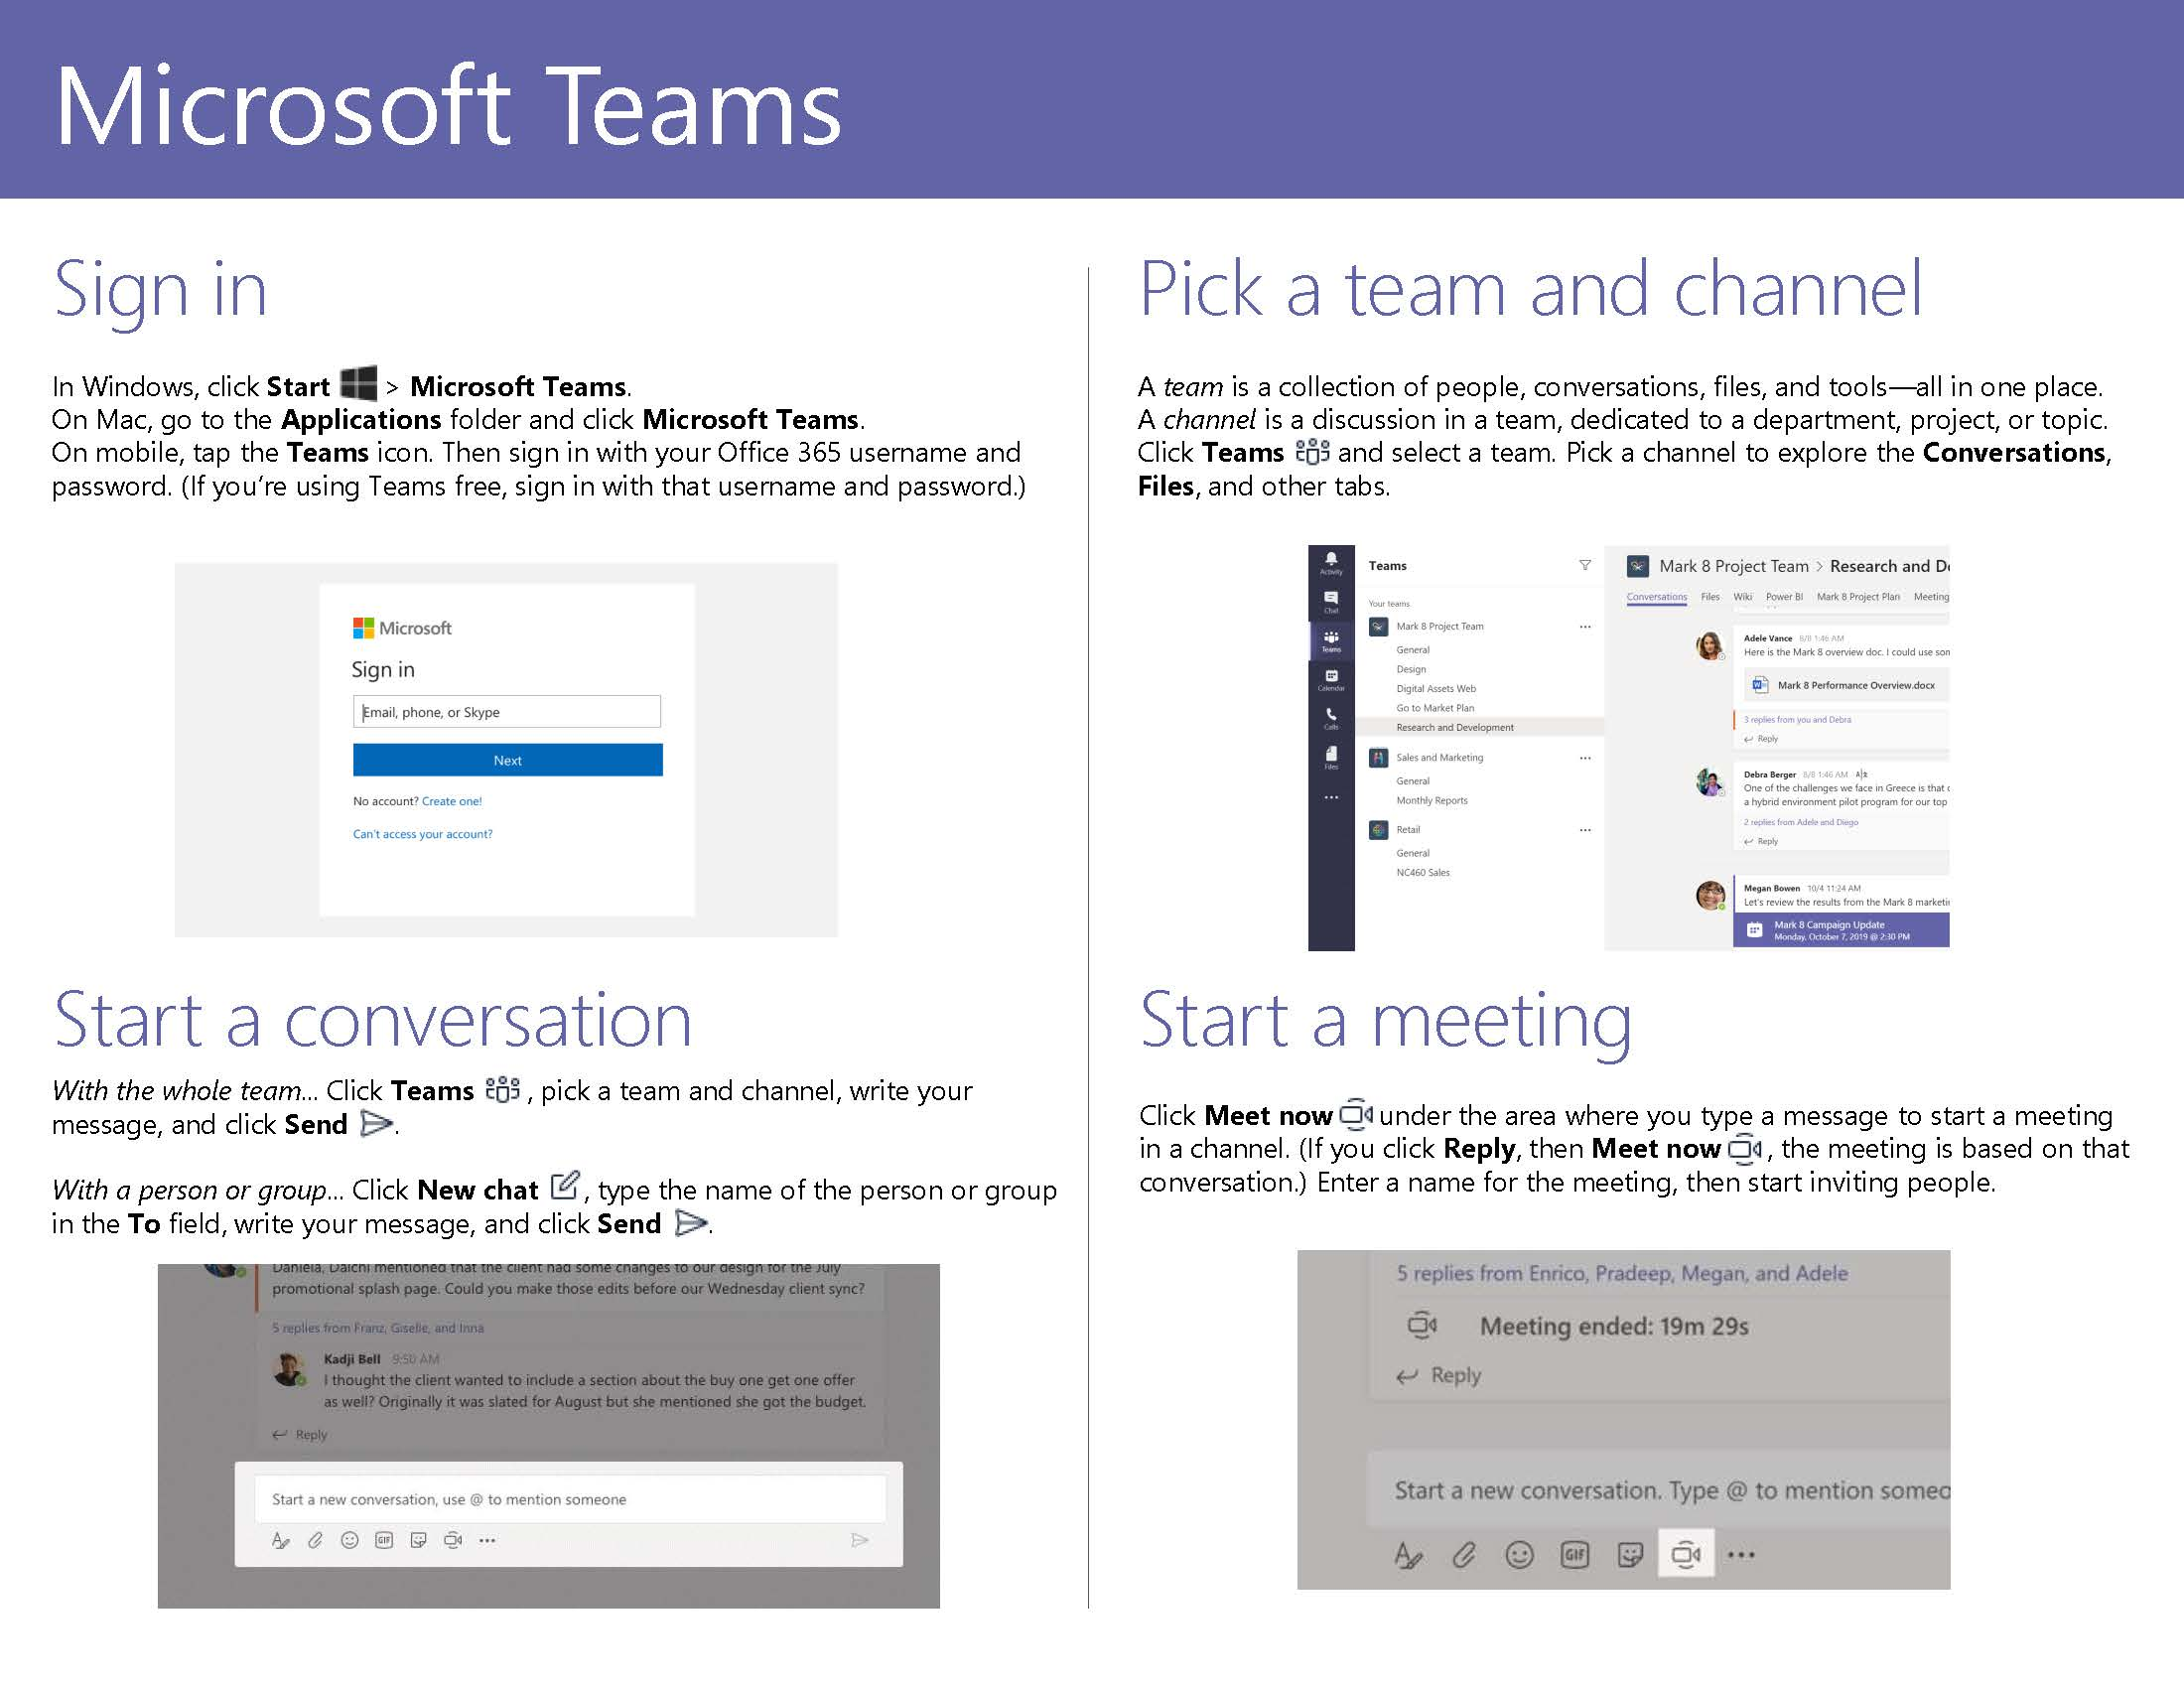 Microsoft Teams Quick Start Guide Page 2